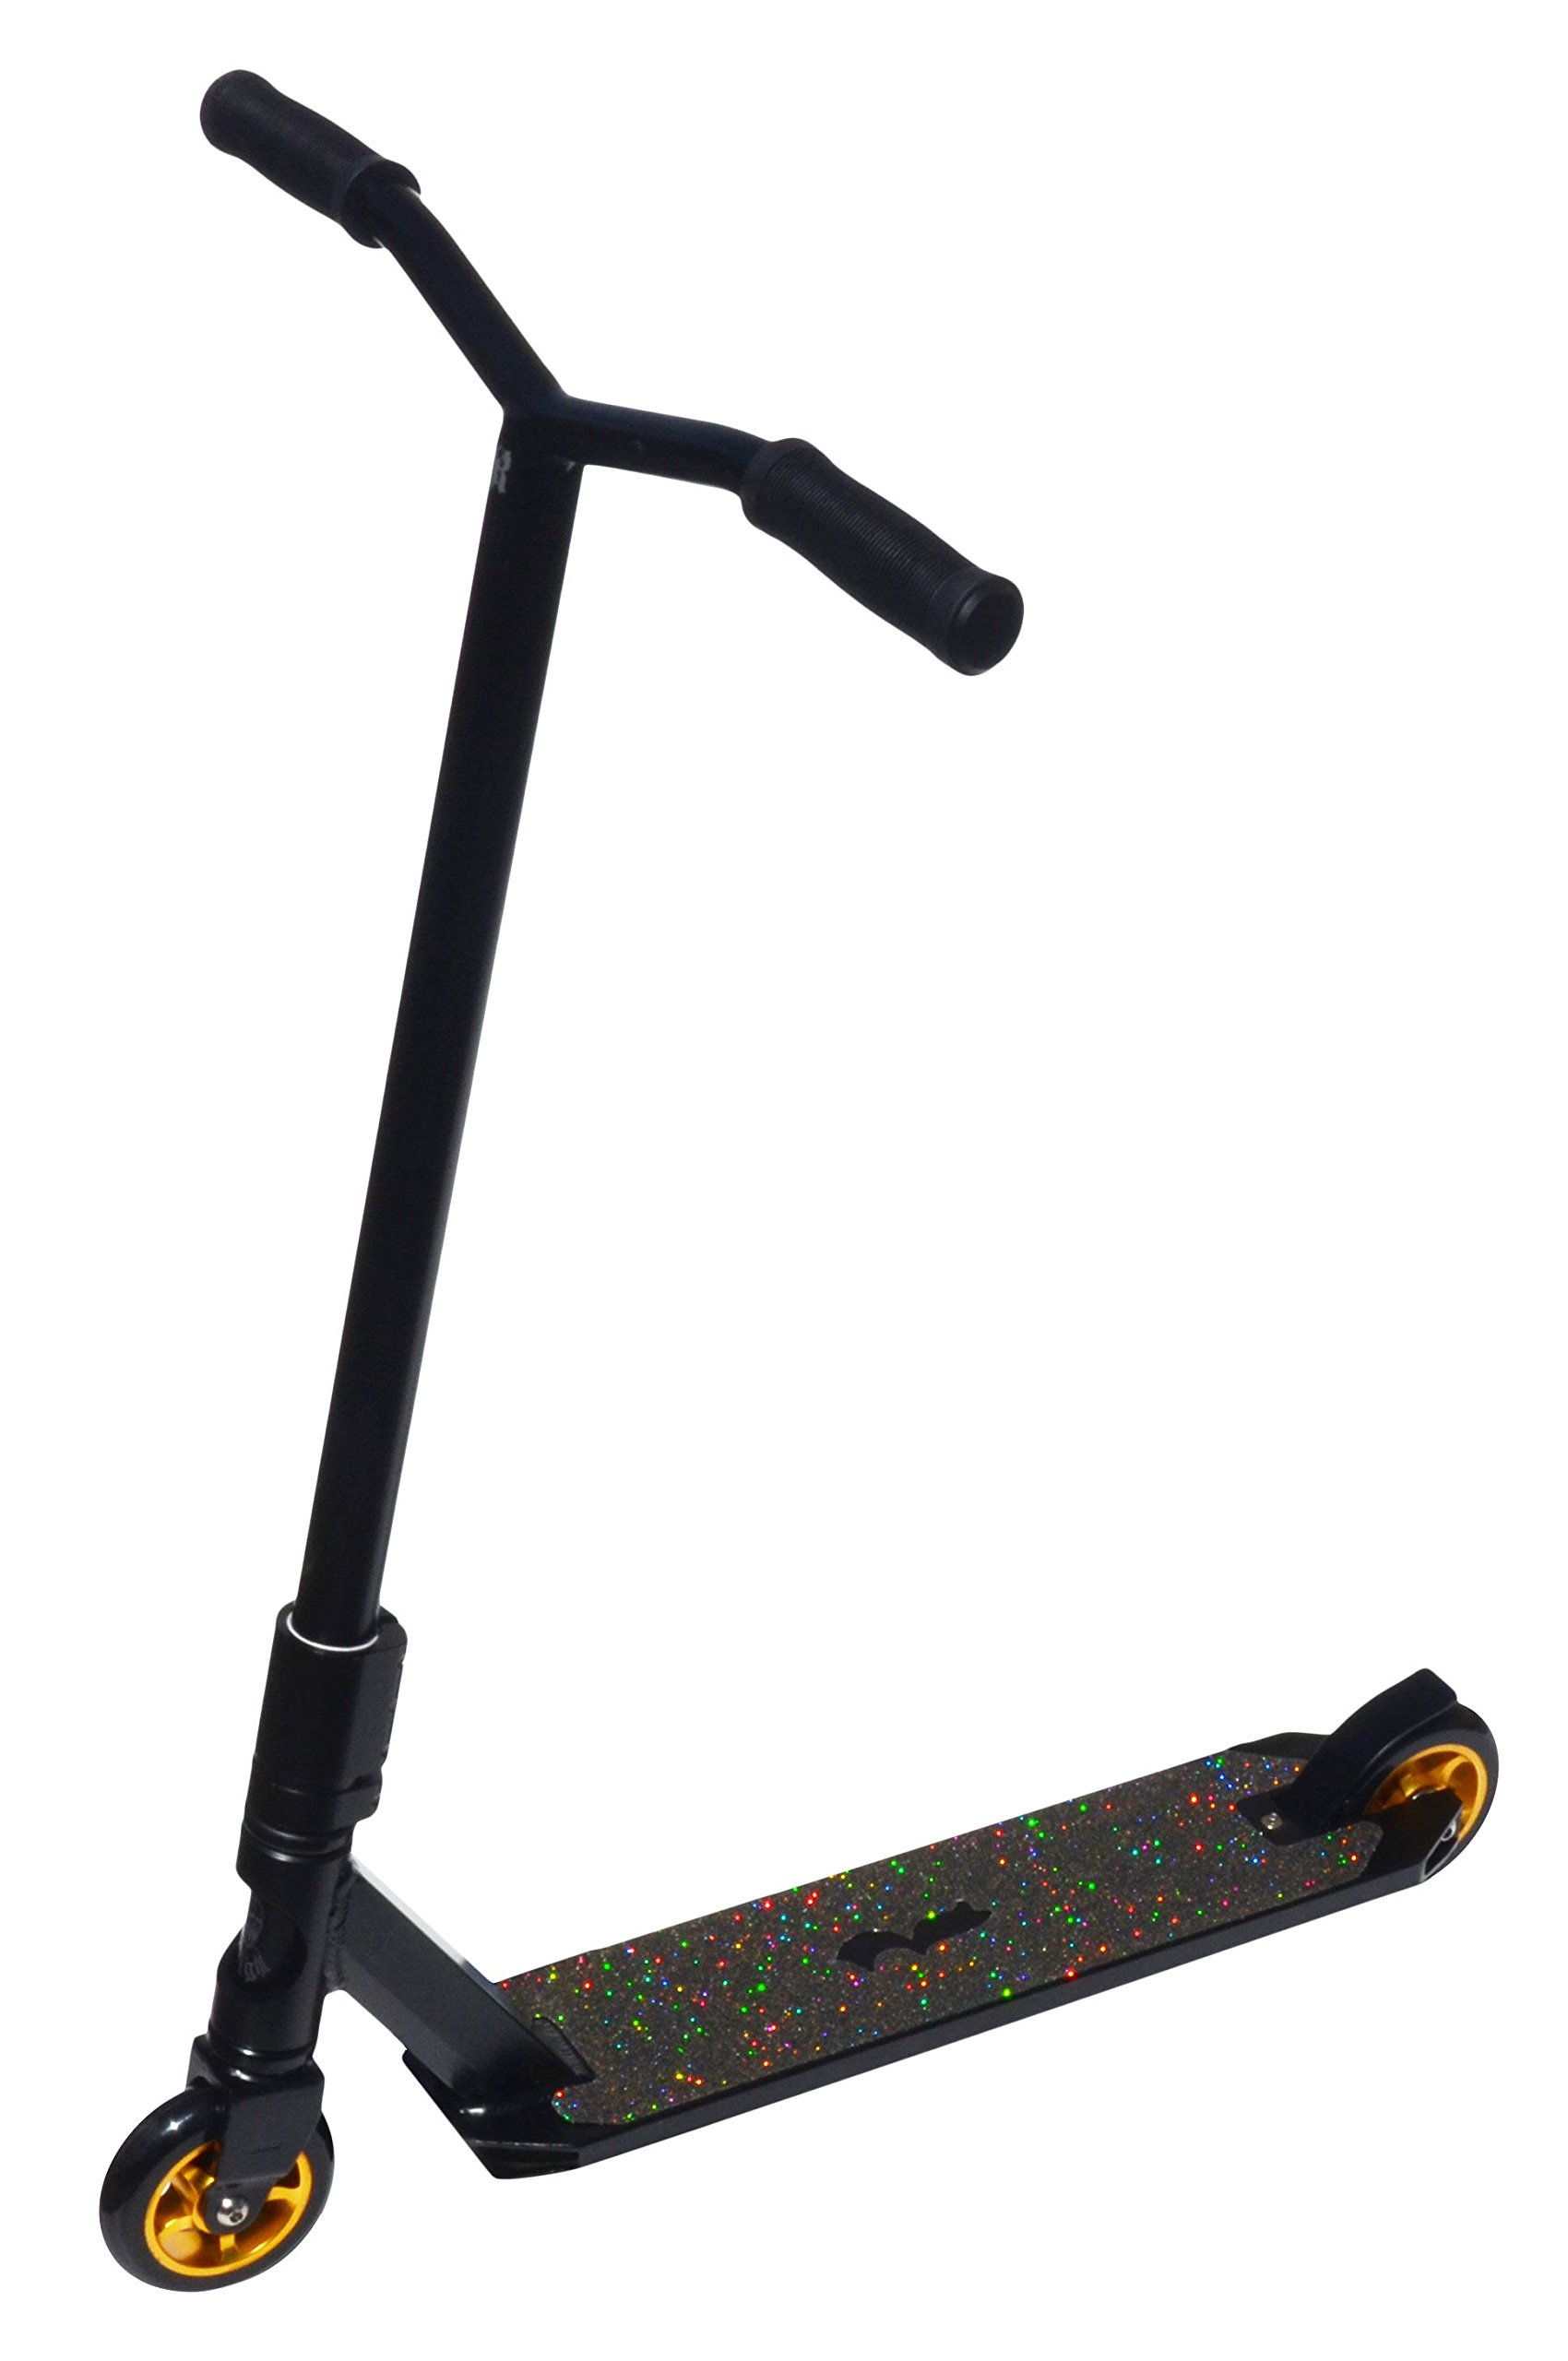 Royal Scooters 71110 Knight Freestyle Stunt Scooter, Black/Gold by Royal Scooters